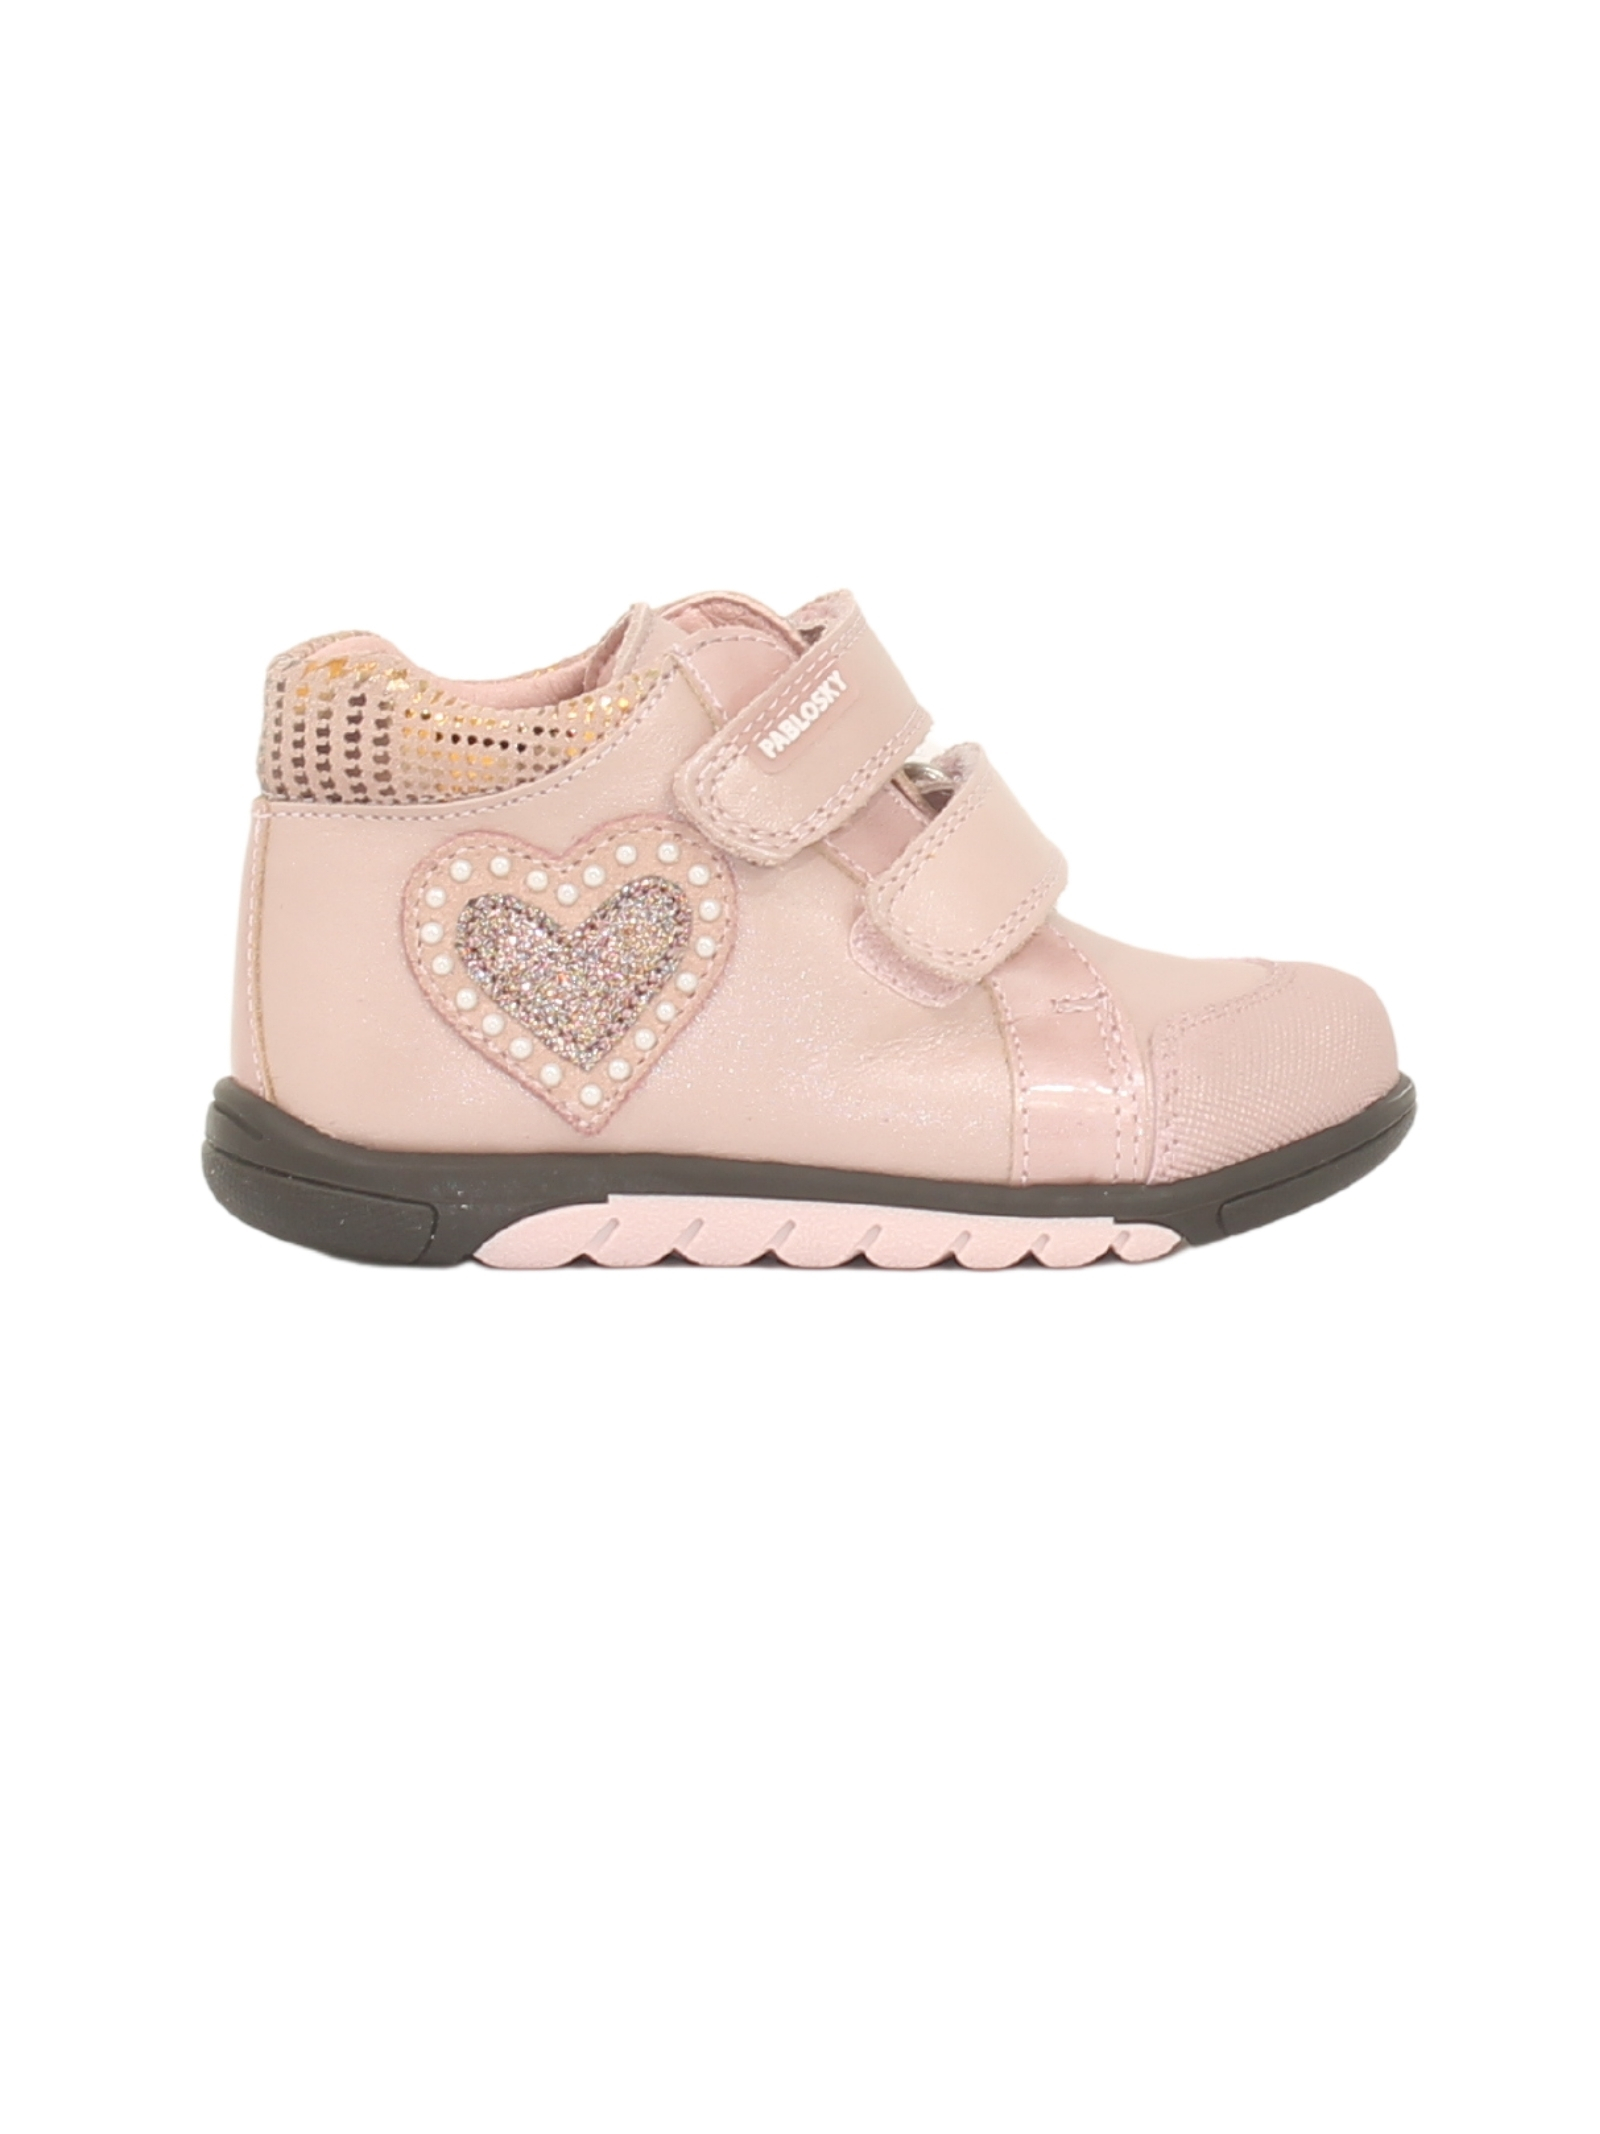 Perlina Sneakers for Girls PABLOSKY | Sneakers | 002182ROSA